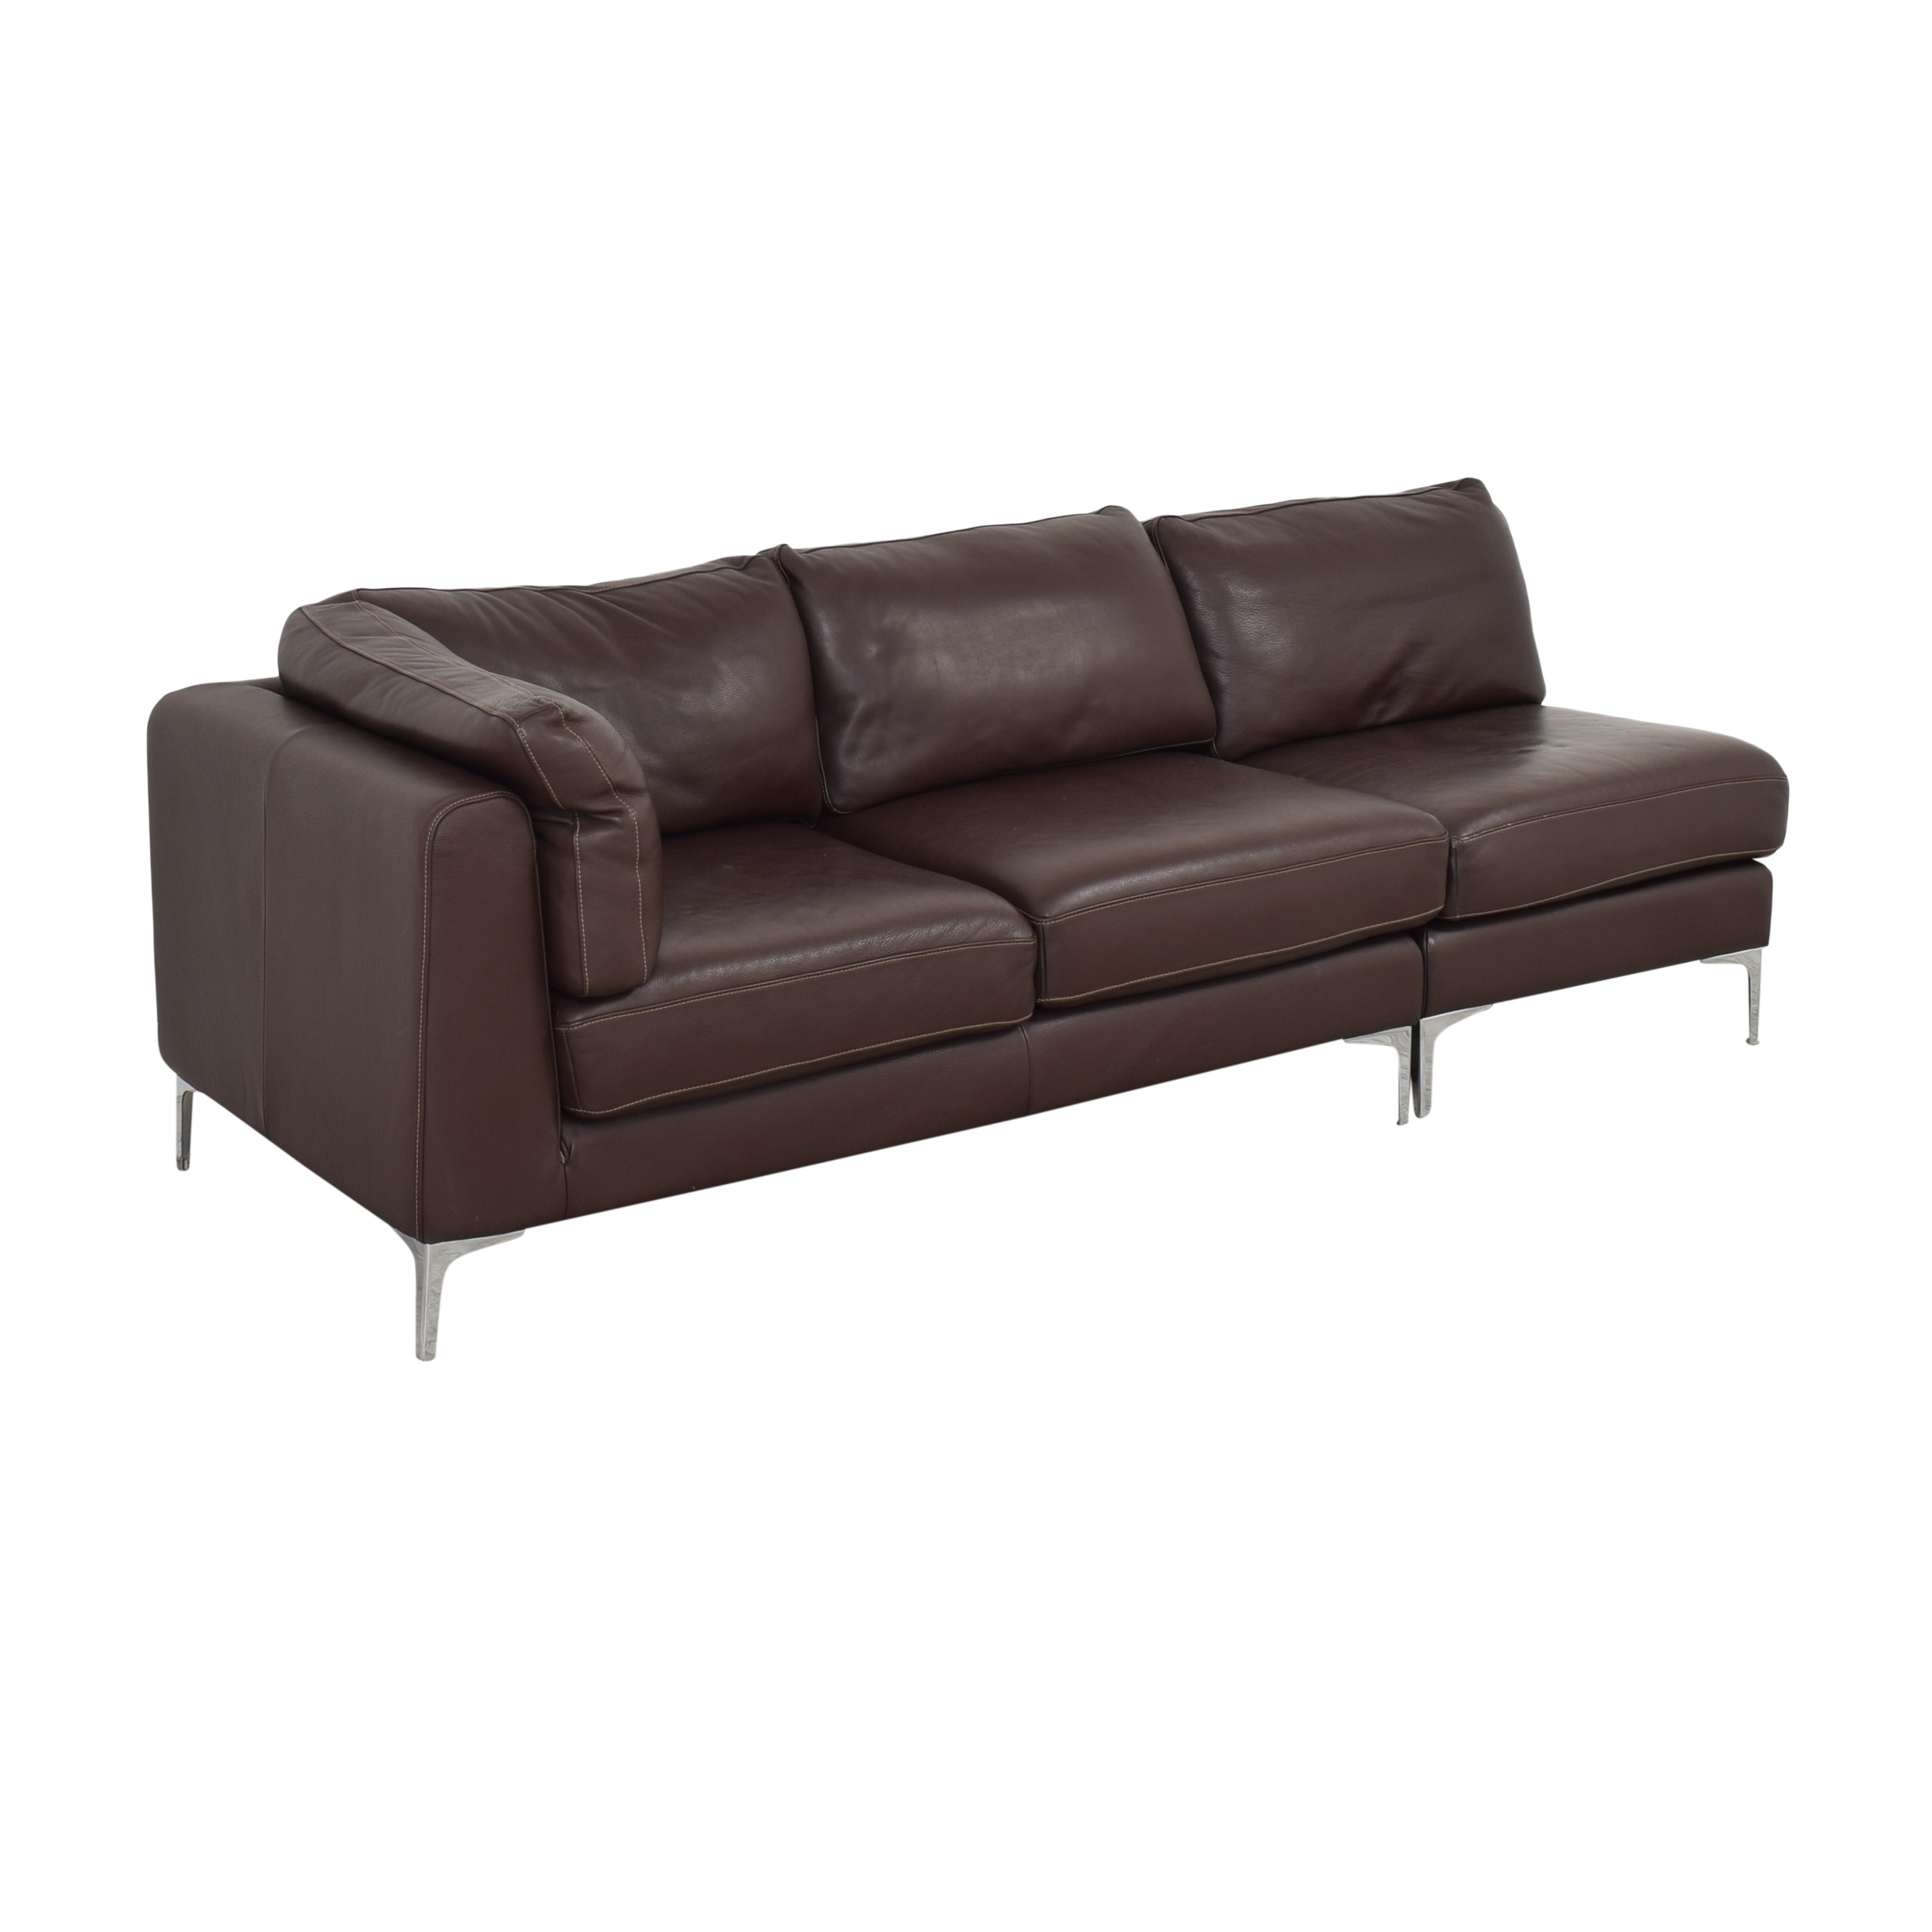 buy Design Within Reach Albert Sectional Sofa Design Within Reach